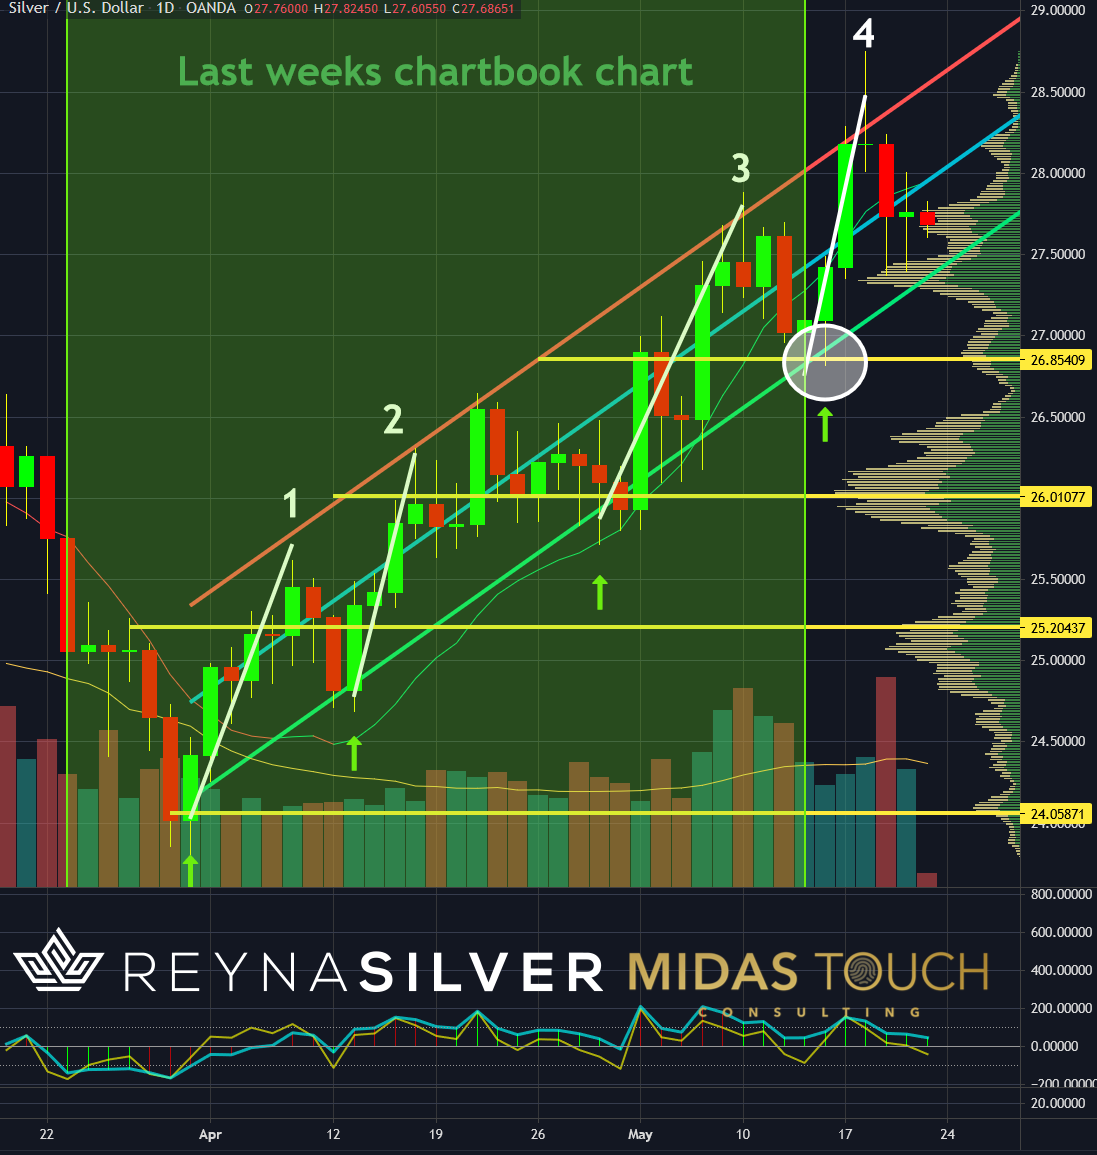 Silver in US-Dollar, daily chart as of May 21st, 2021. Basel 3 the Silver bull.